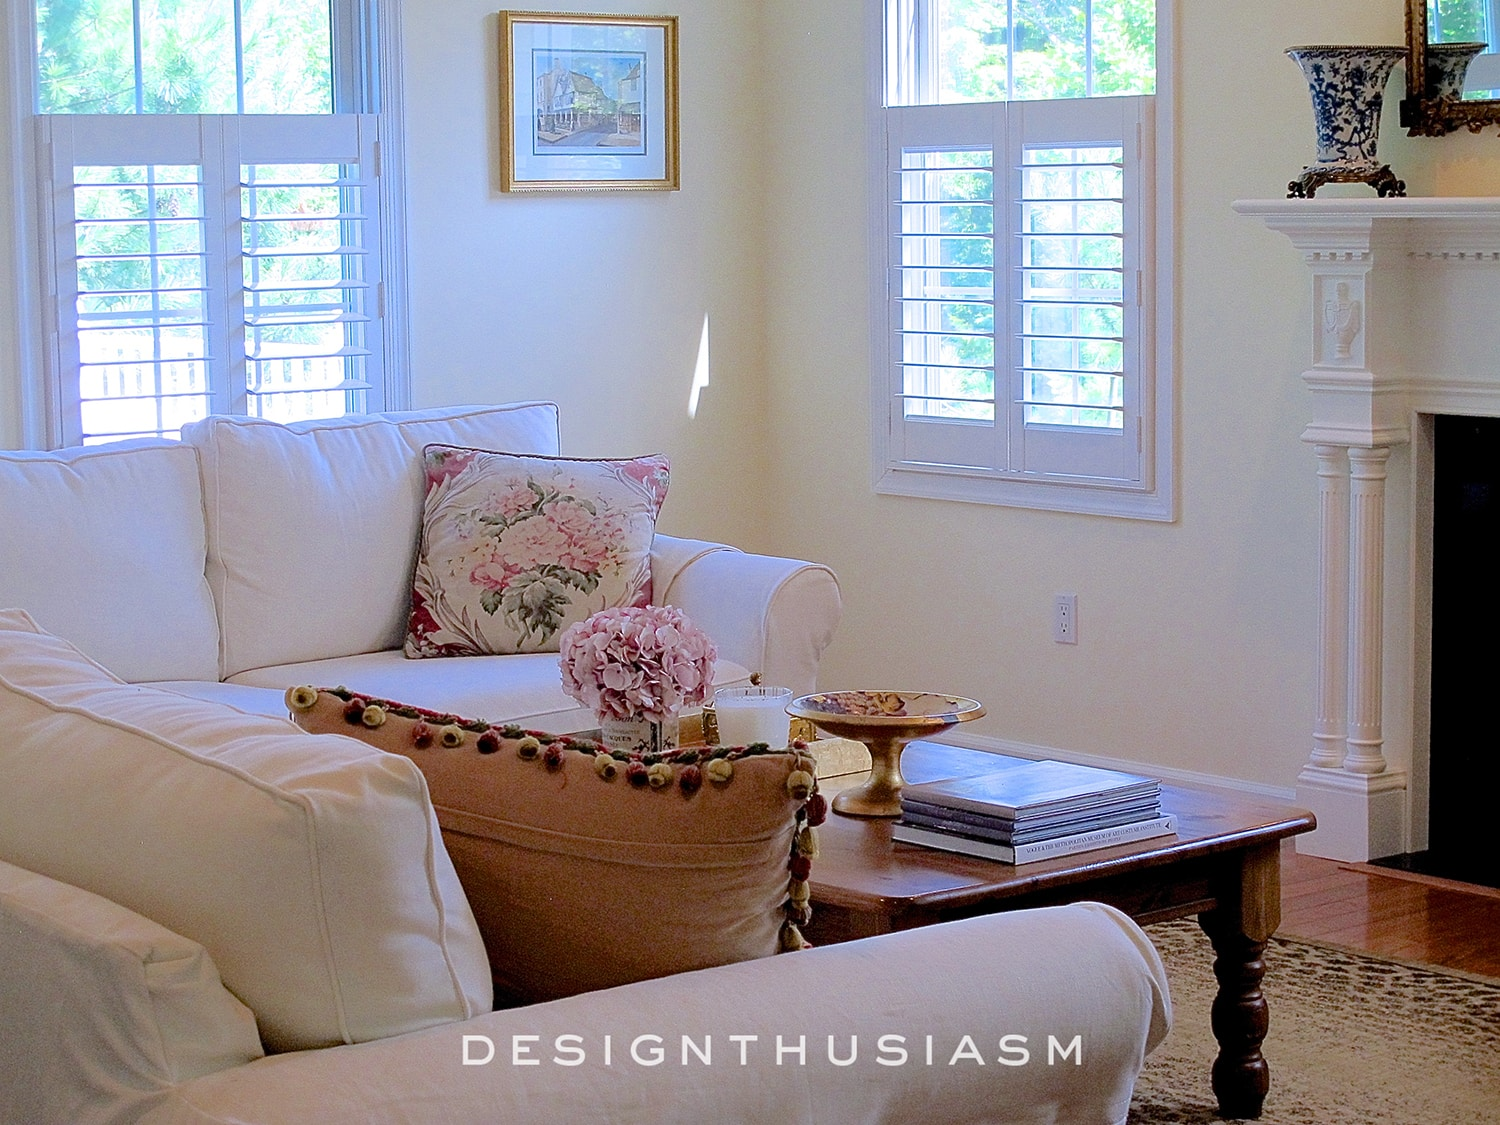 Beautiful and Comfortable Den | Designthusiasm.com